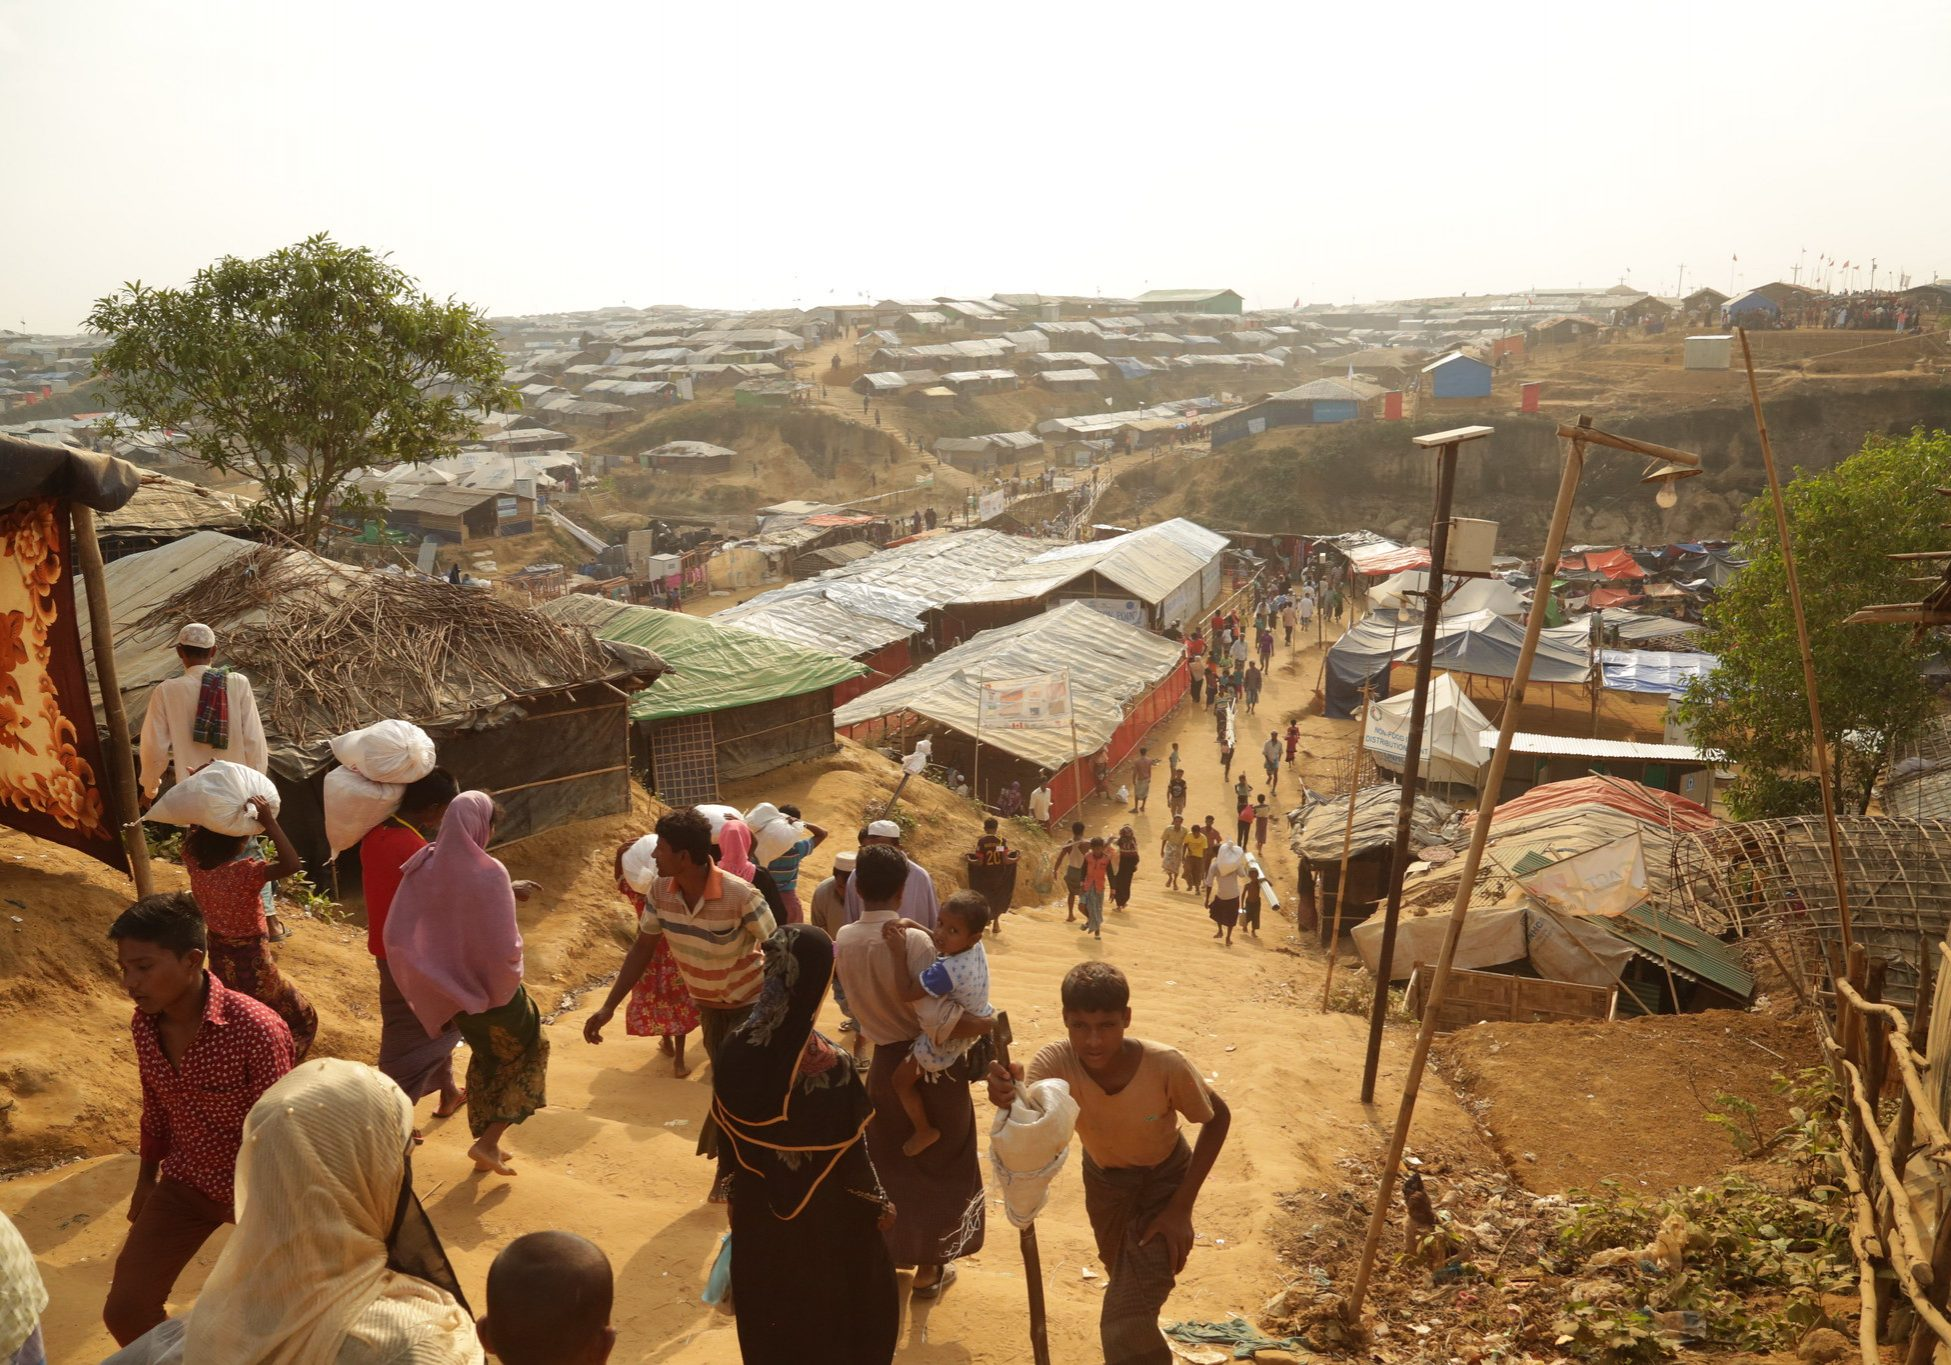 View of the sprawling Kutupalong refugee camp, Bangladesh. Photo credit: Russel Watkins/Department for International Development, UKAID